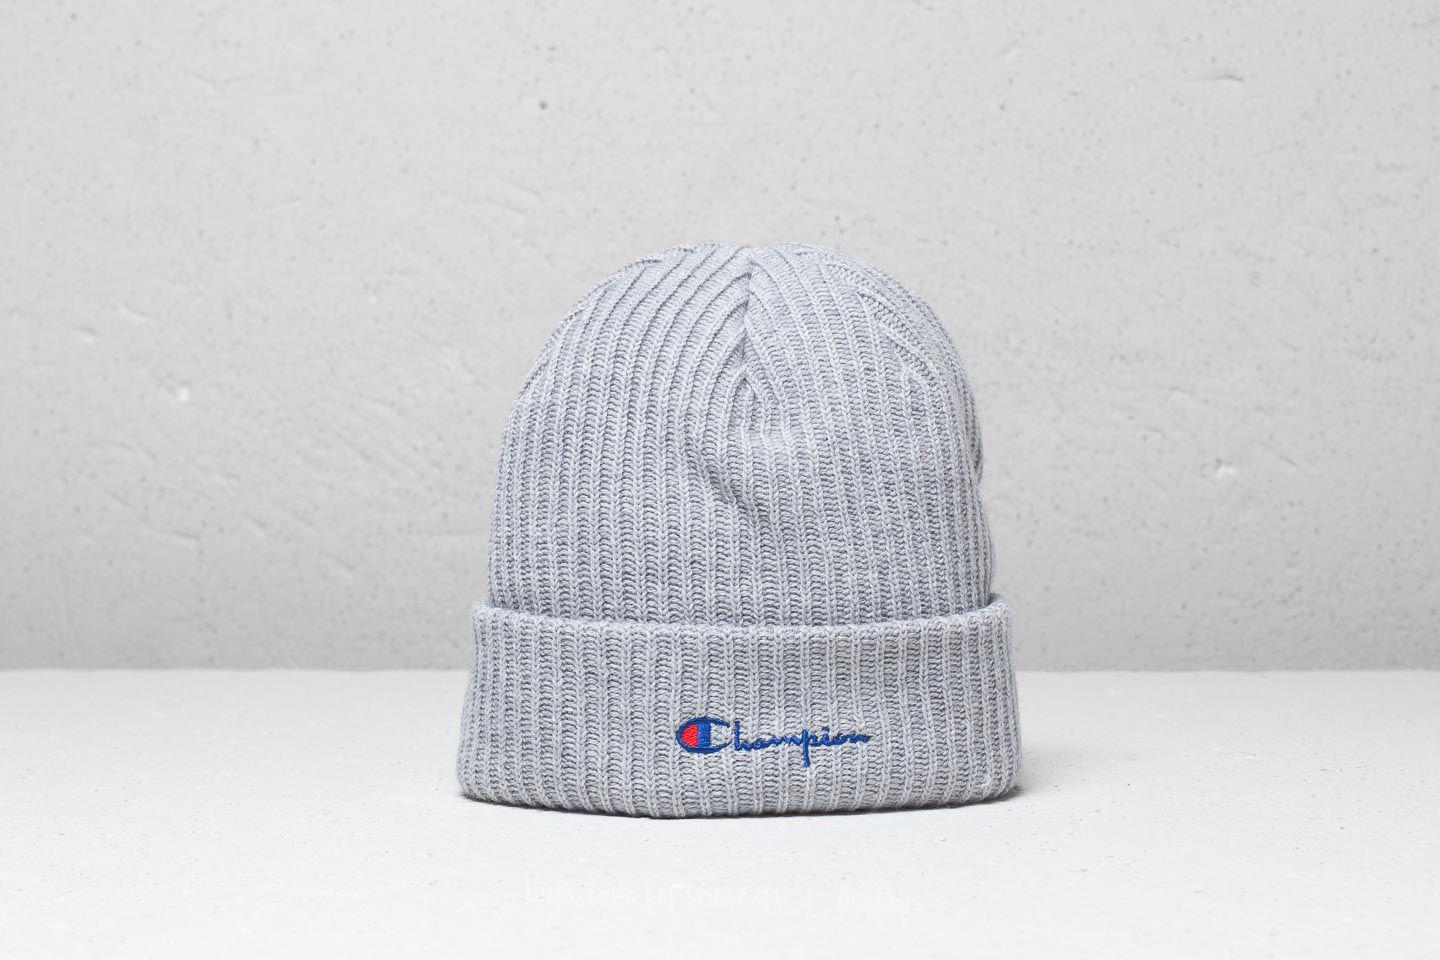 a74fce1c803ff Lyst - Champion Beanie Light Oxford Grey Melange in Gray for Men